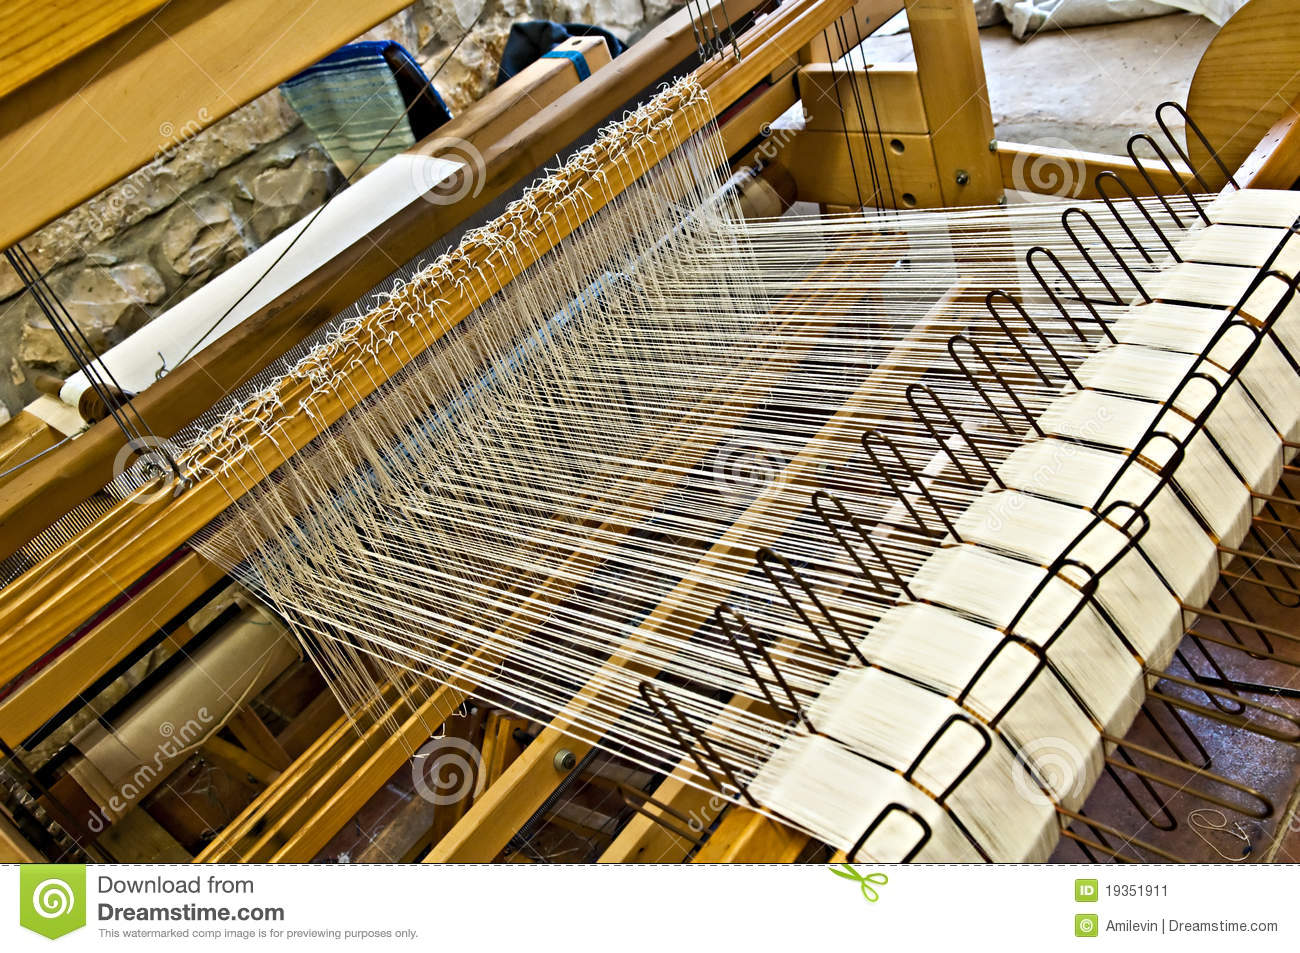 Weaving Machine Stock Image - Image: 19351911